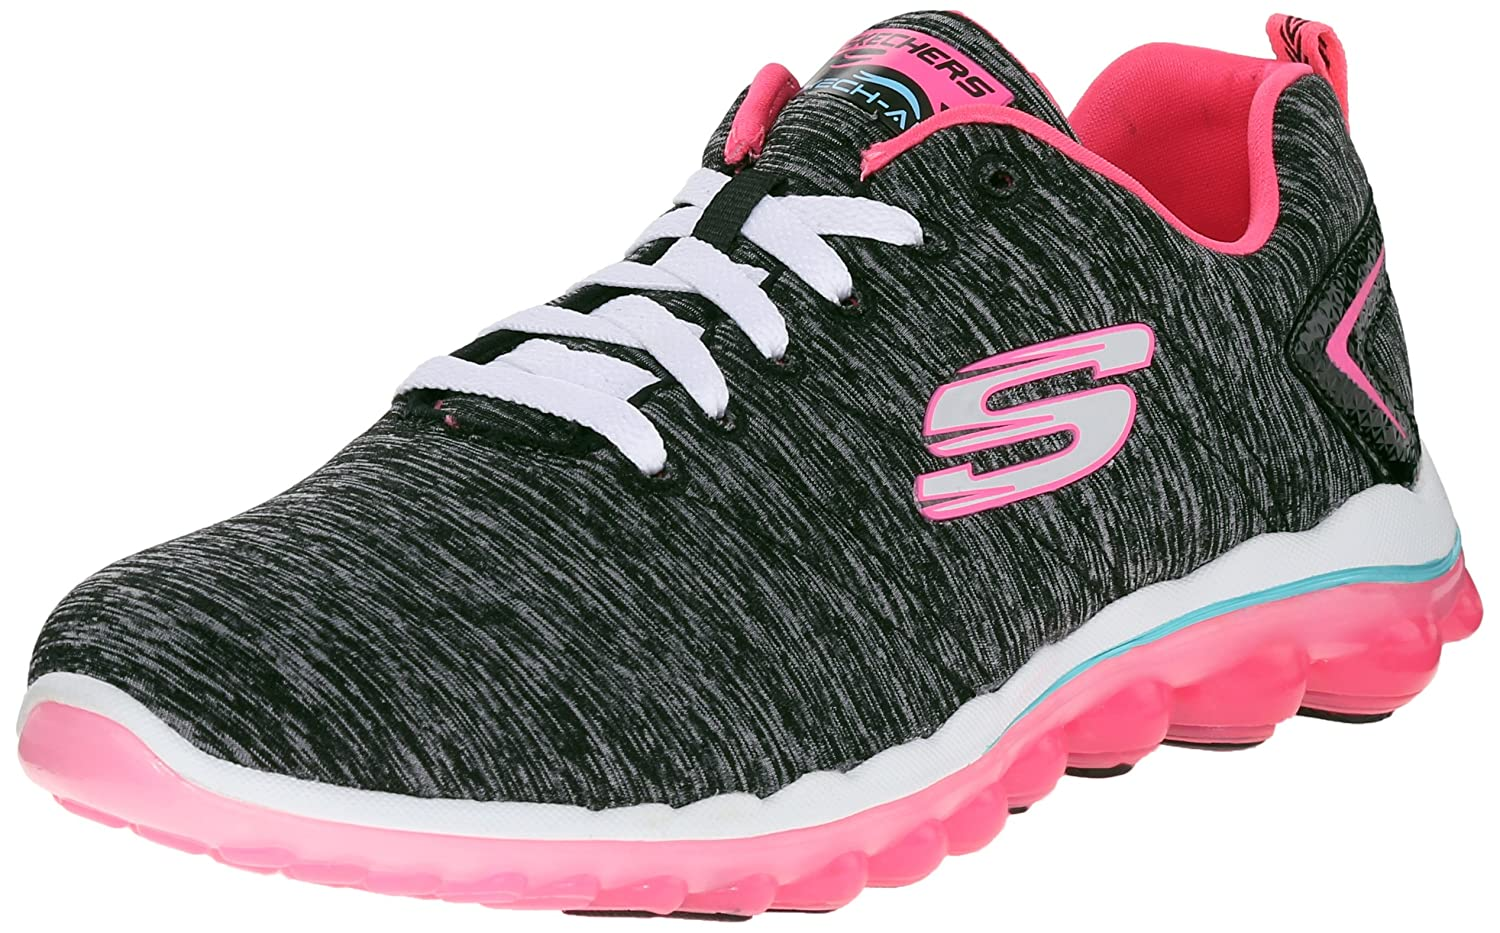 気質アップ Skechers Women's Skech-Air 2.0 US - Discoveries Ankle-High B013DNEO5M Fabric Running B(M) Shoe B013DNEO5M ブラック/ホットピンク 8 B(M) US 8 B(M) US|ブラック/ホットピンク, ミナミフラノチョウ:1a8be036 --- a0267596.xsph.ru